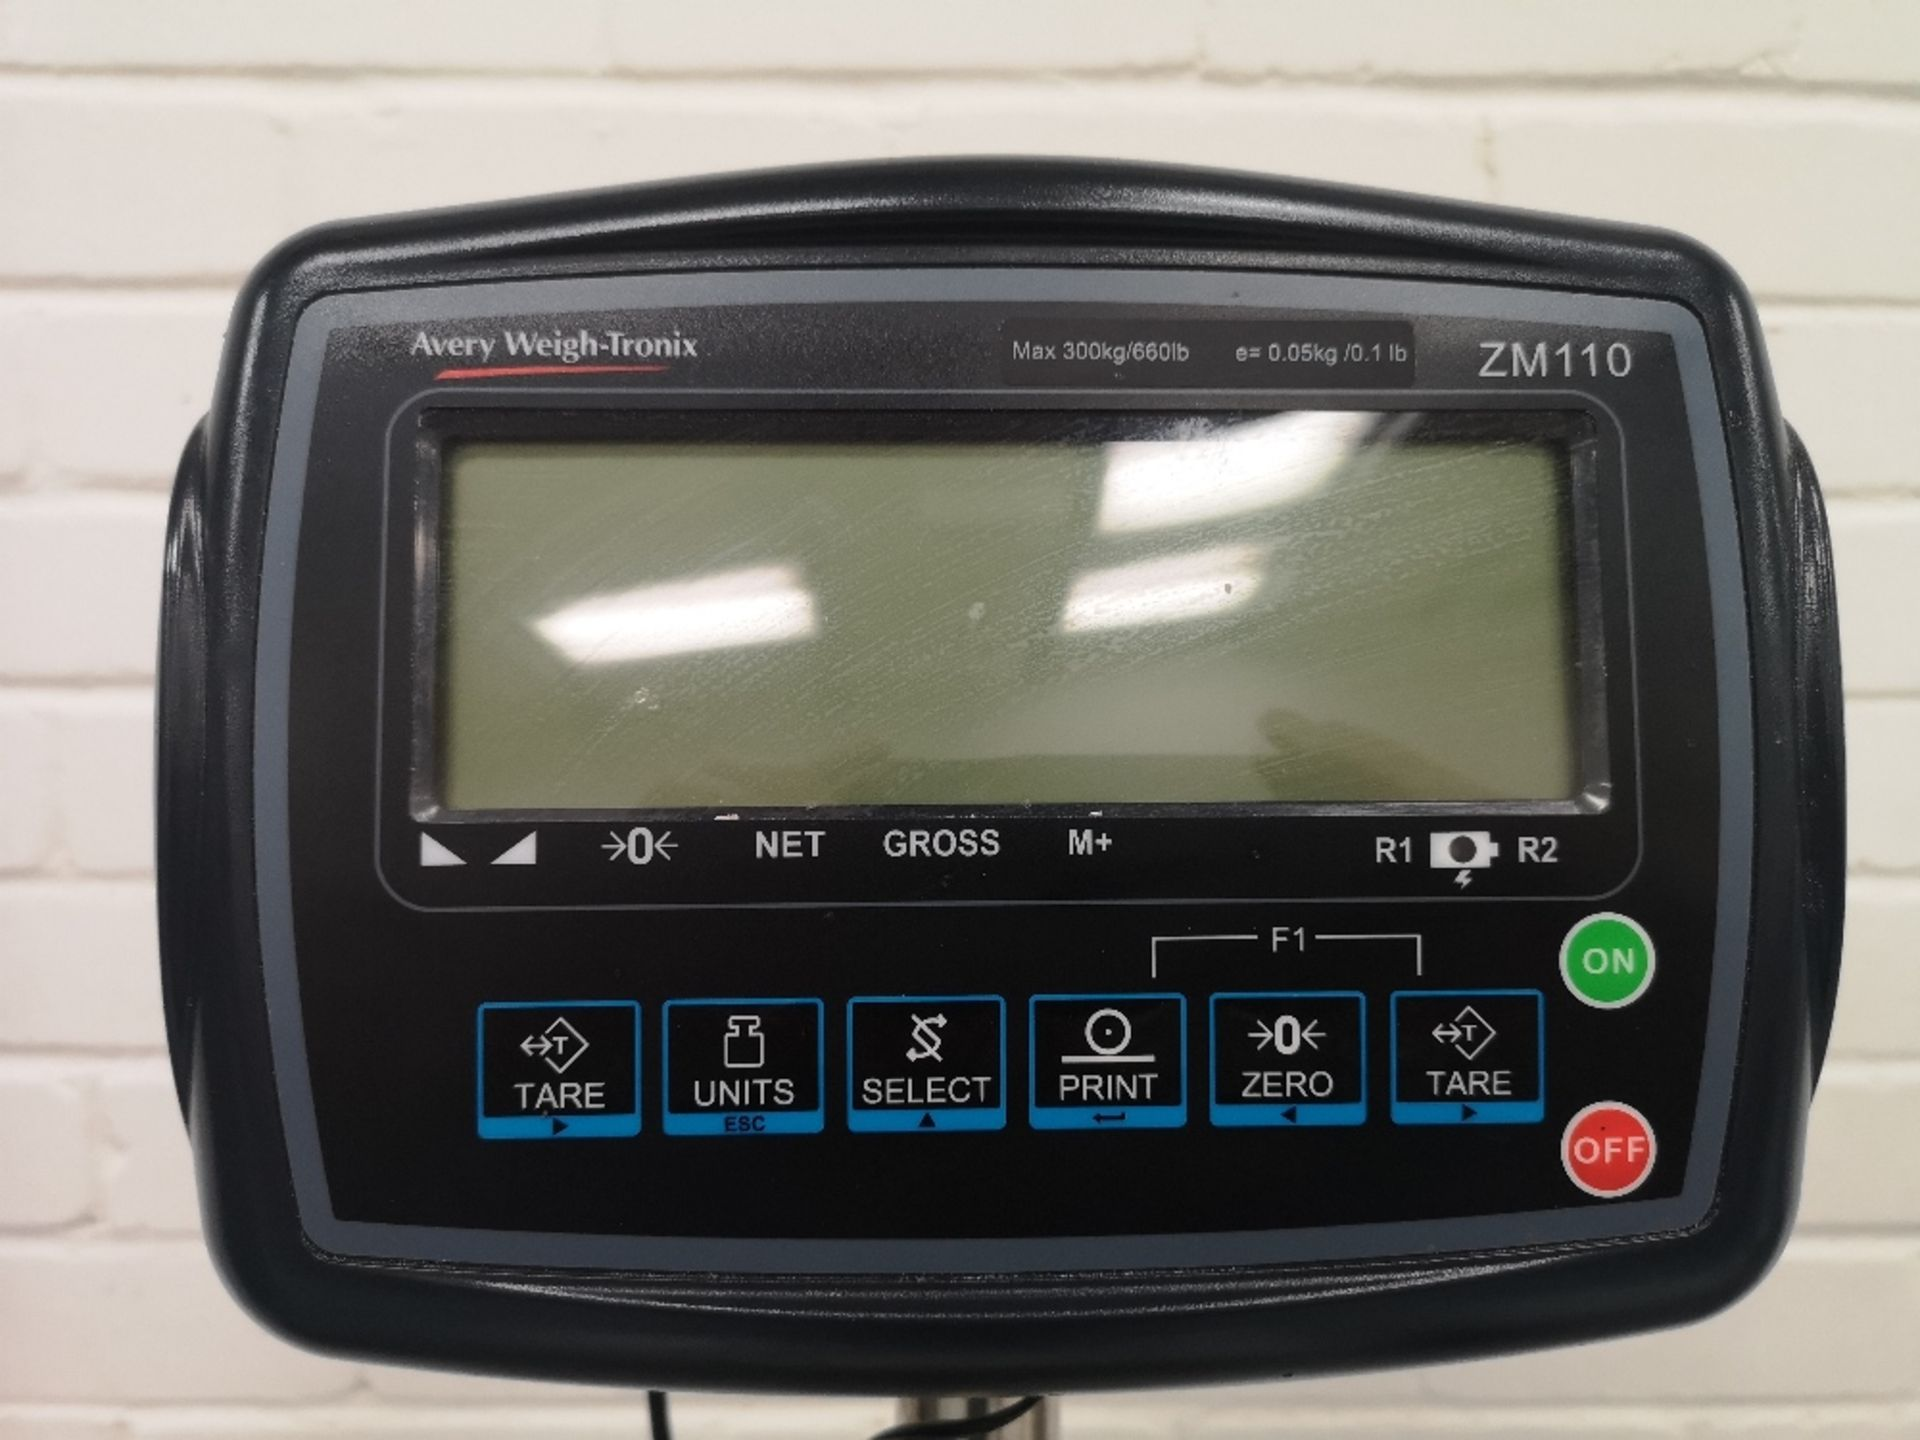 Avery Weigh-Tronix ZM110 300kg Bench & Floor Scale - Image 2 of 3